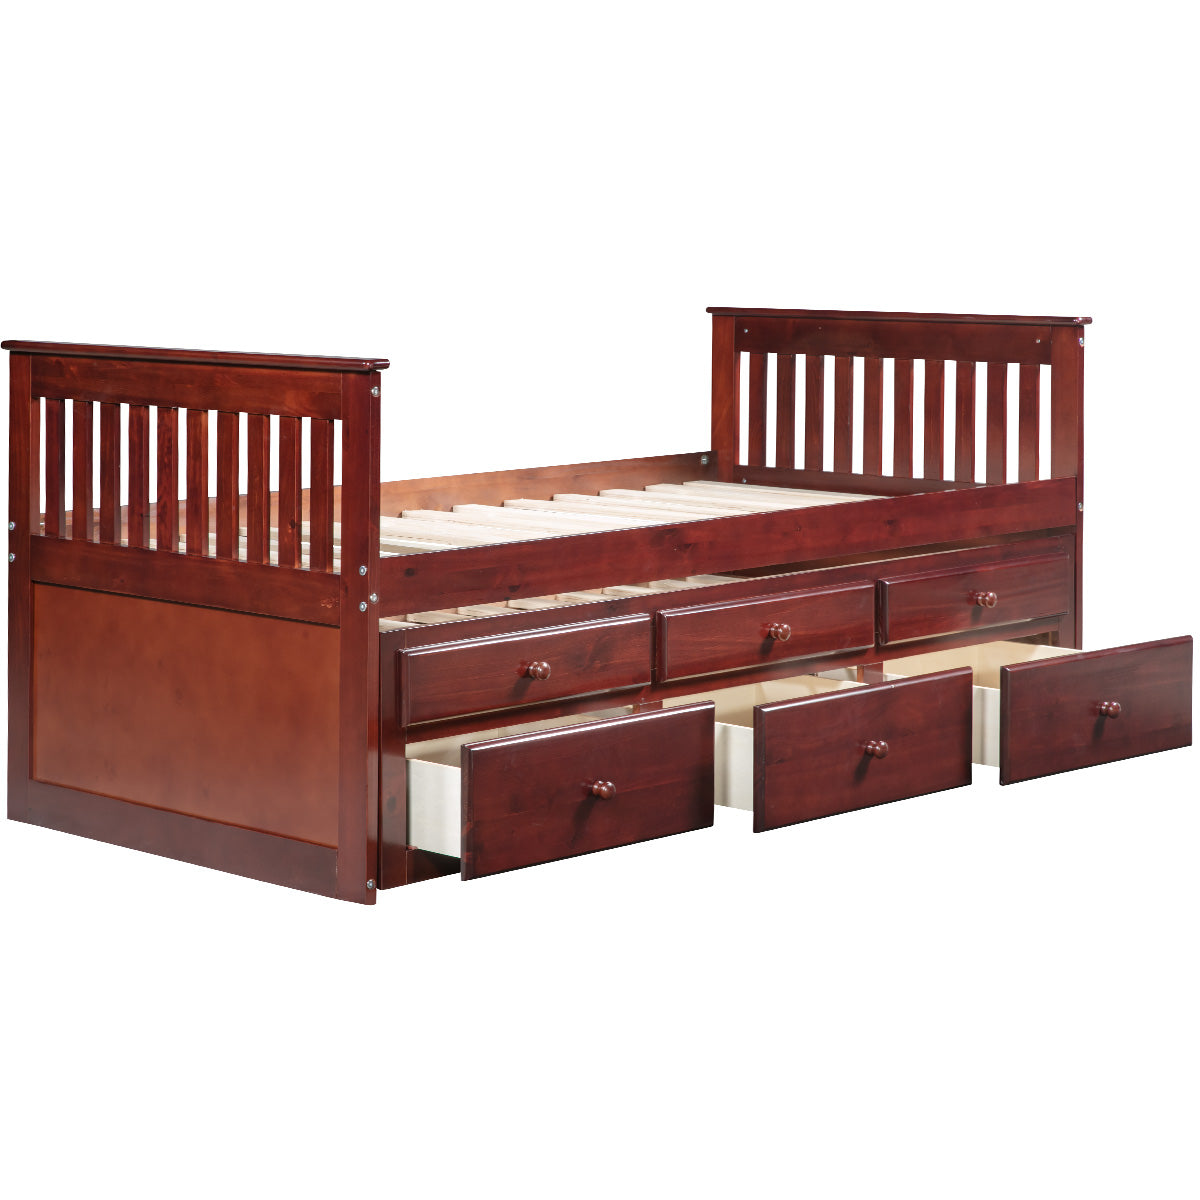 CAMANDE Captain's Bed Twin Daybed with Trundle Bed and Storage Drawers, Walnut